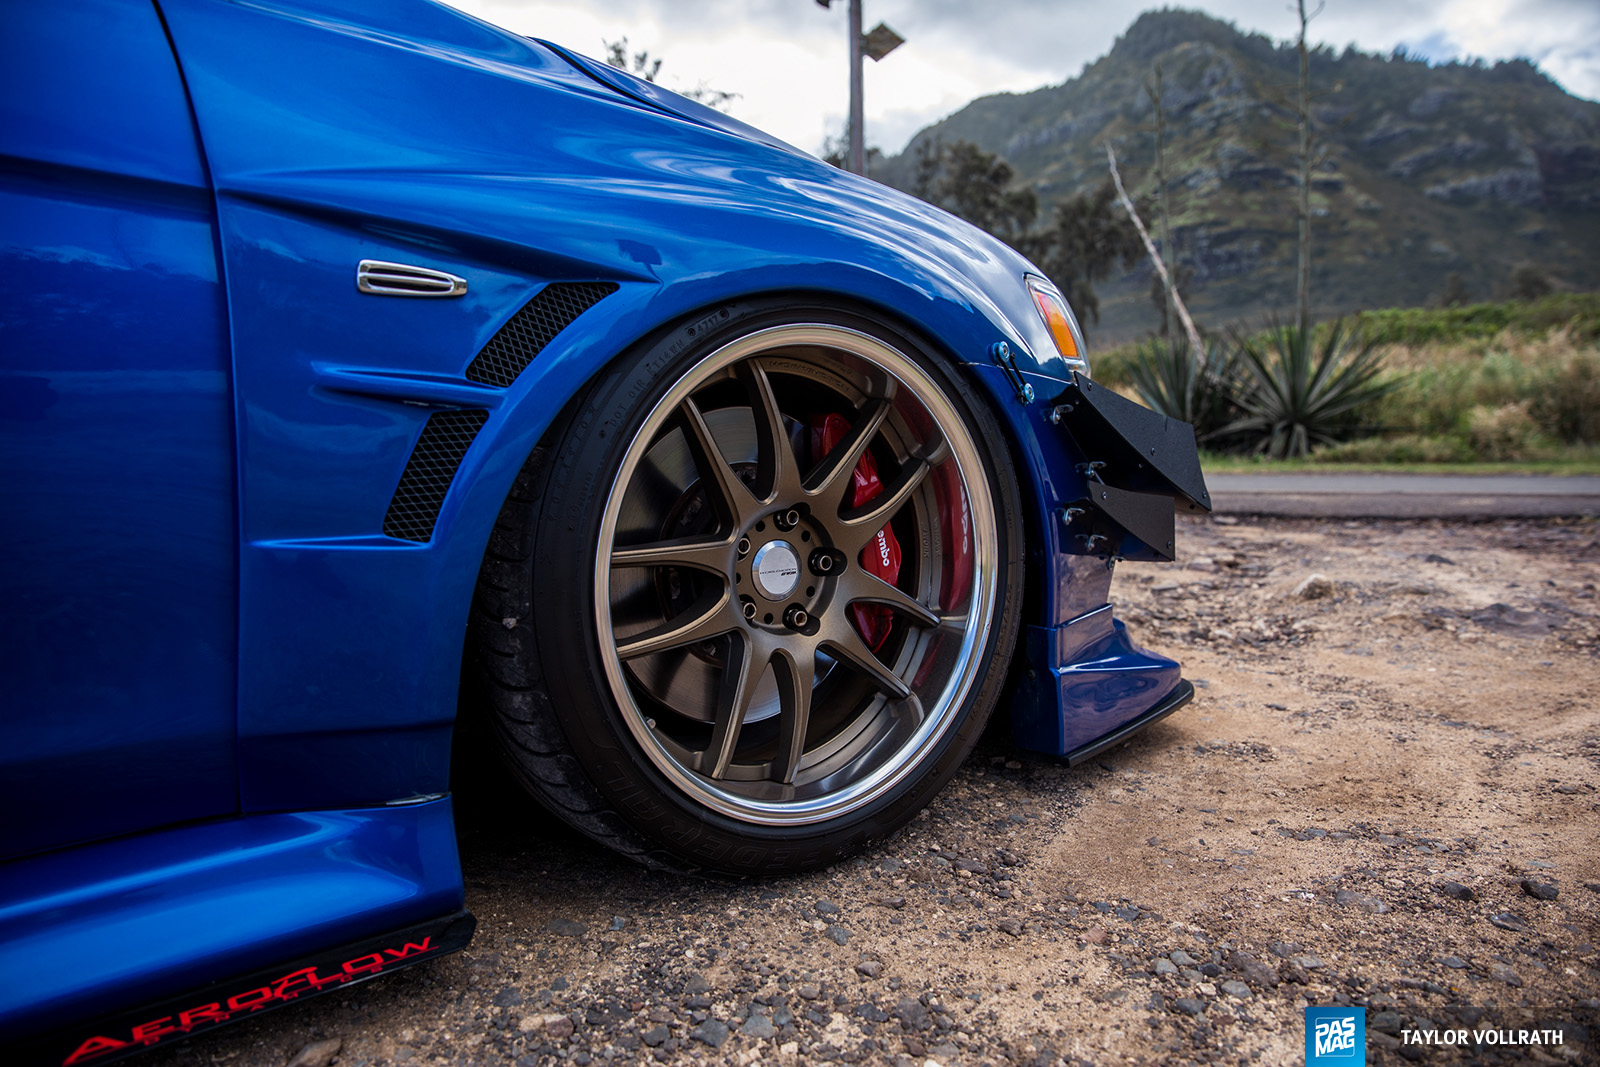 05 JM Andrada 2015 Mitsubishi Evolution X PASMAG Tuner Battlegrounds